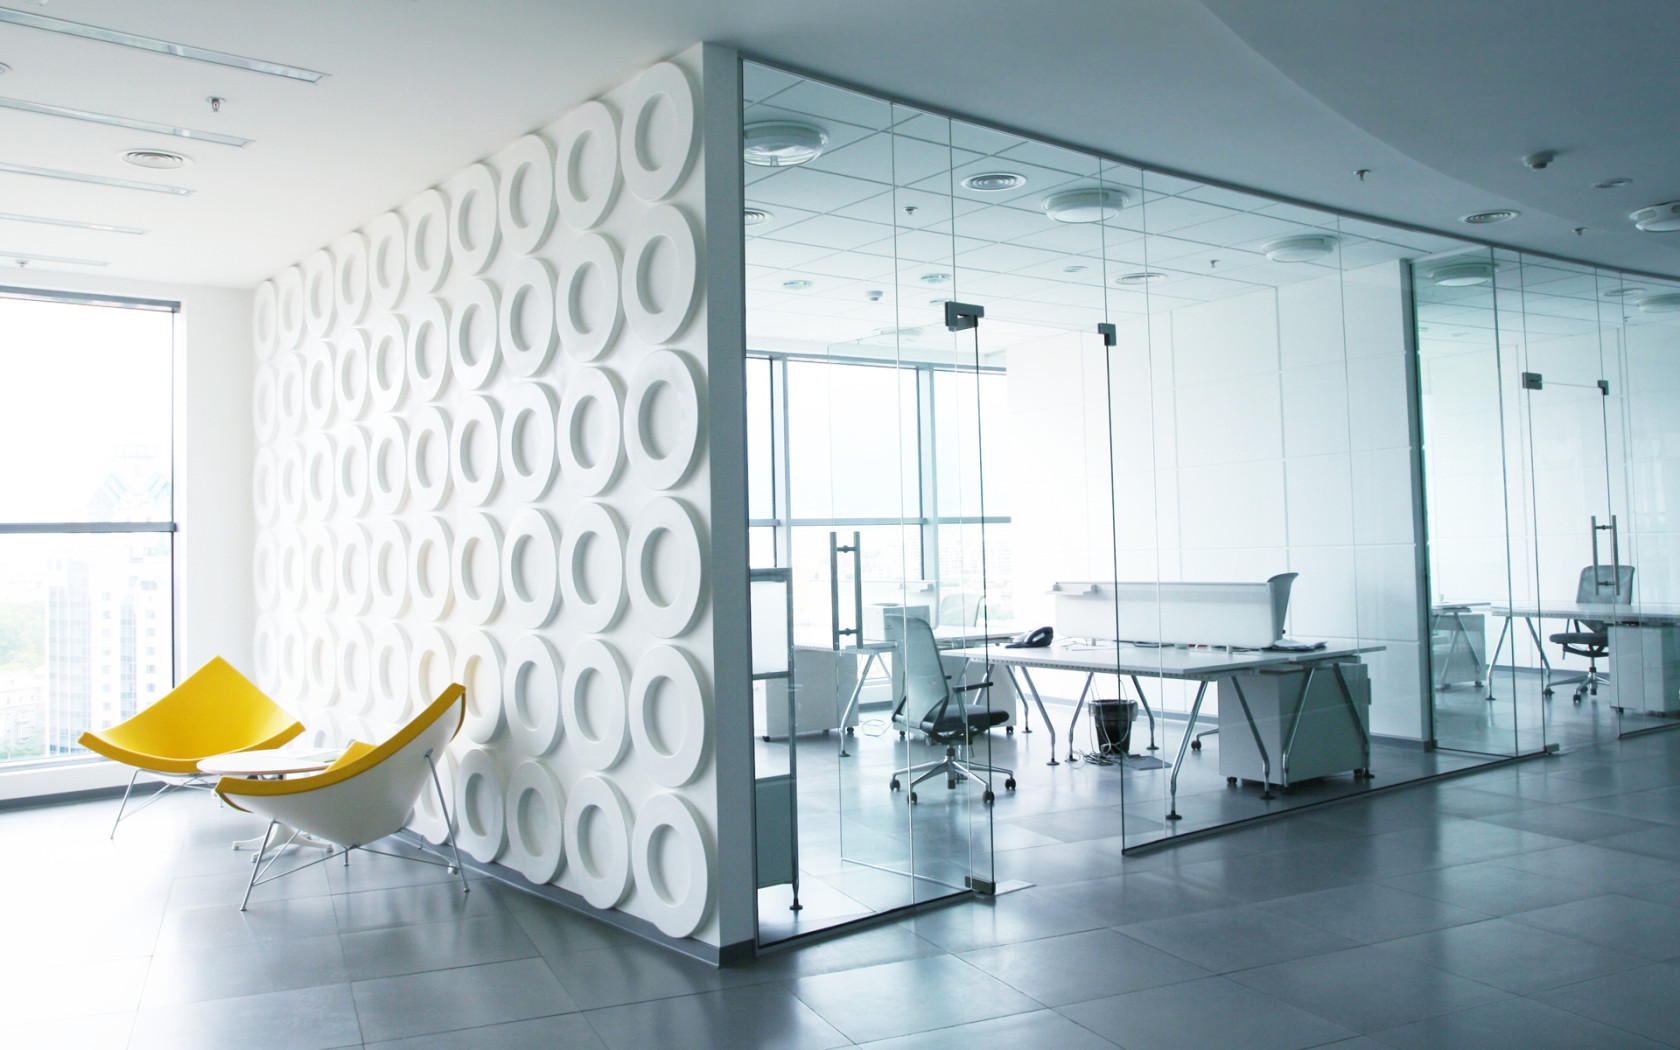 Find an office space with the help of a realtor